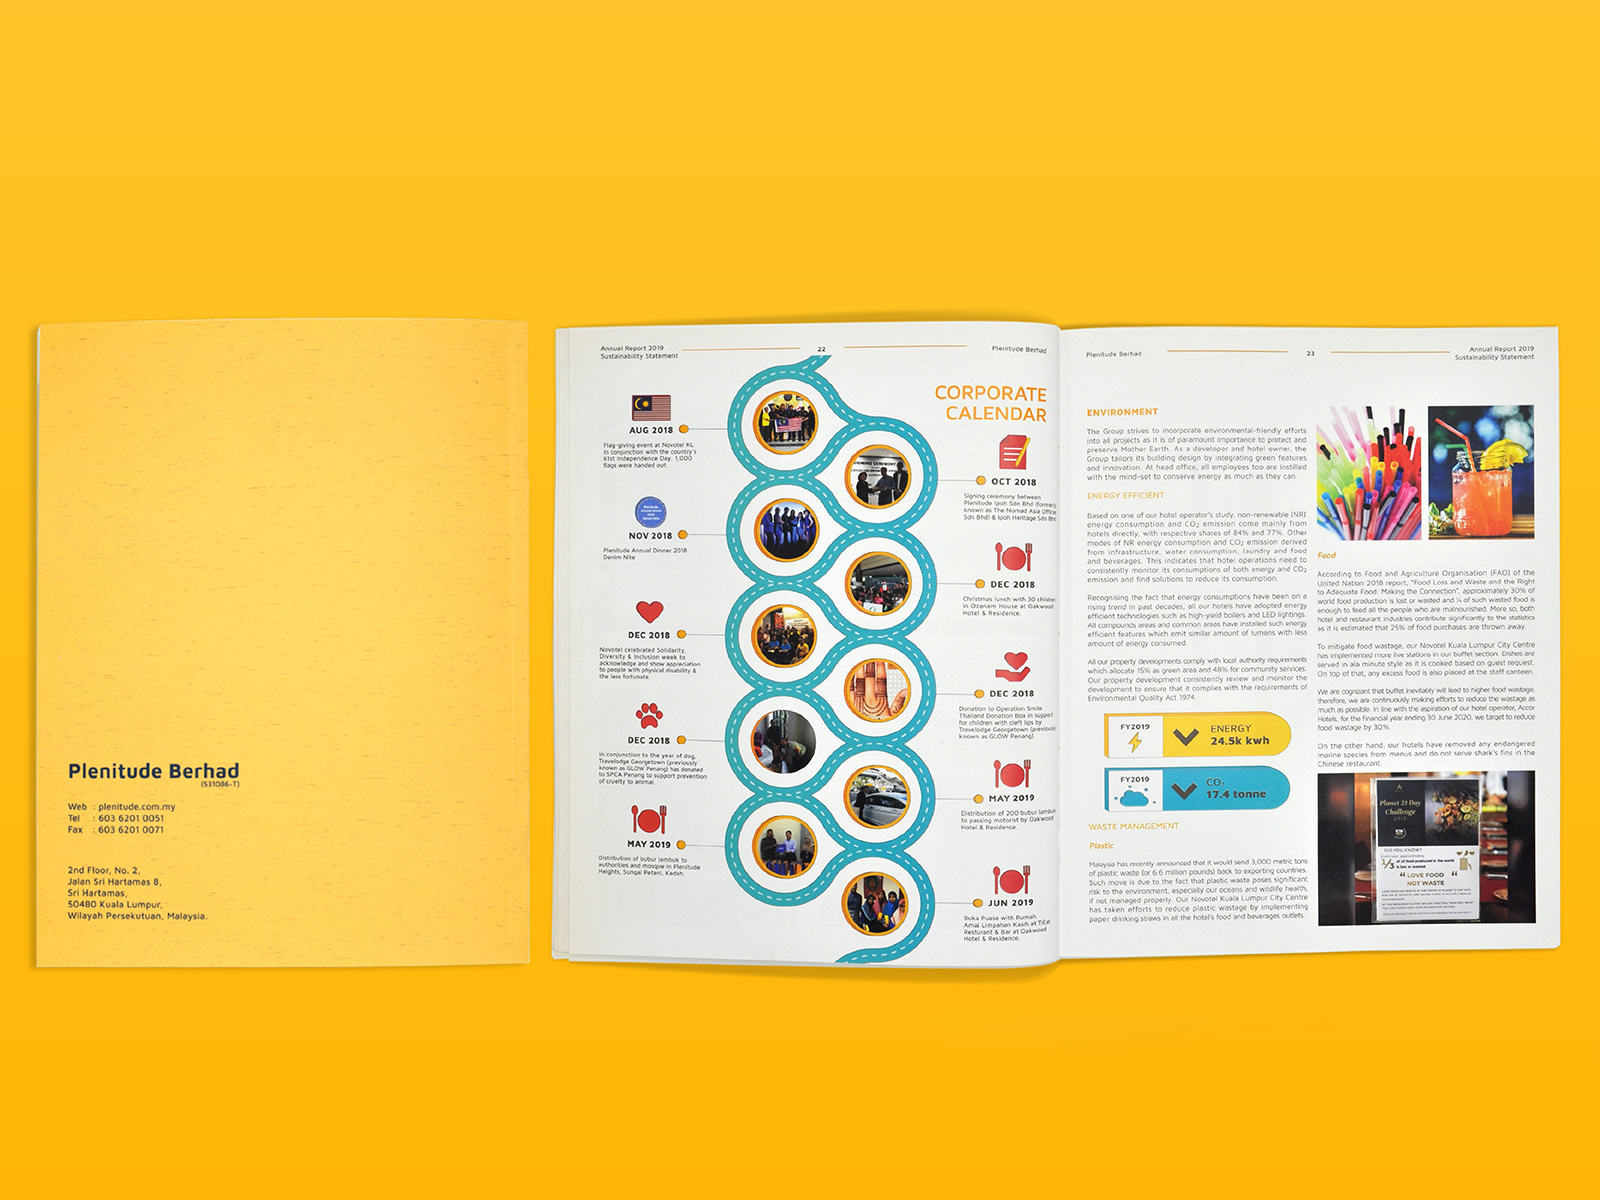 Plenitude annual report 2019 inner page layout design with graph and icon design